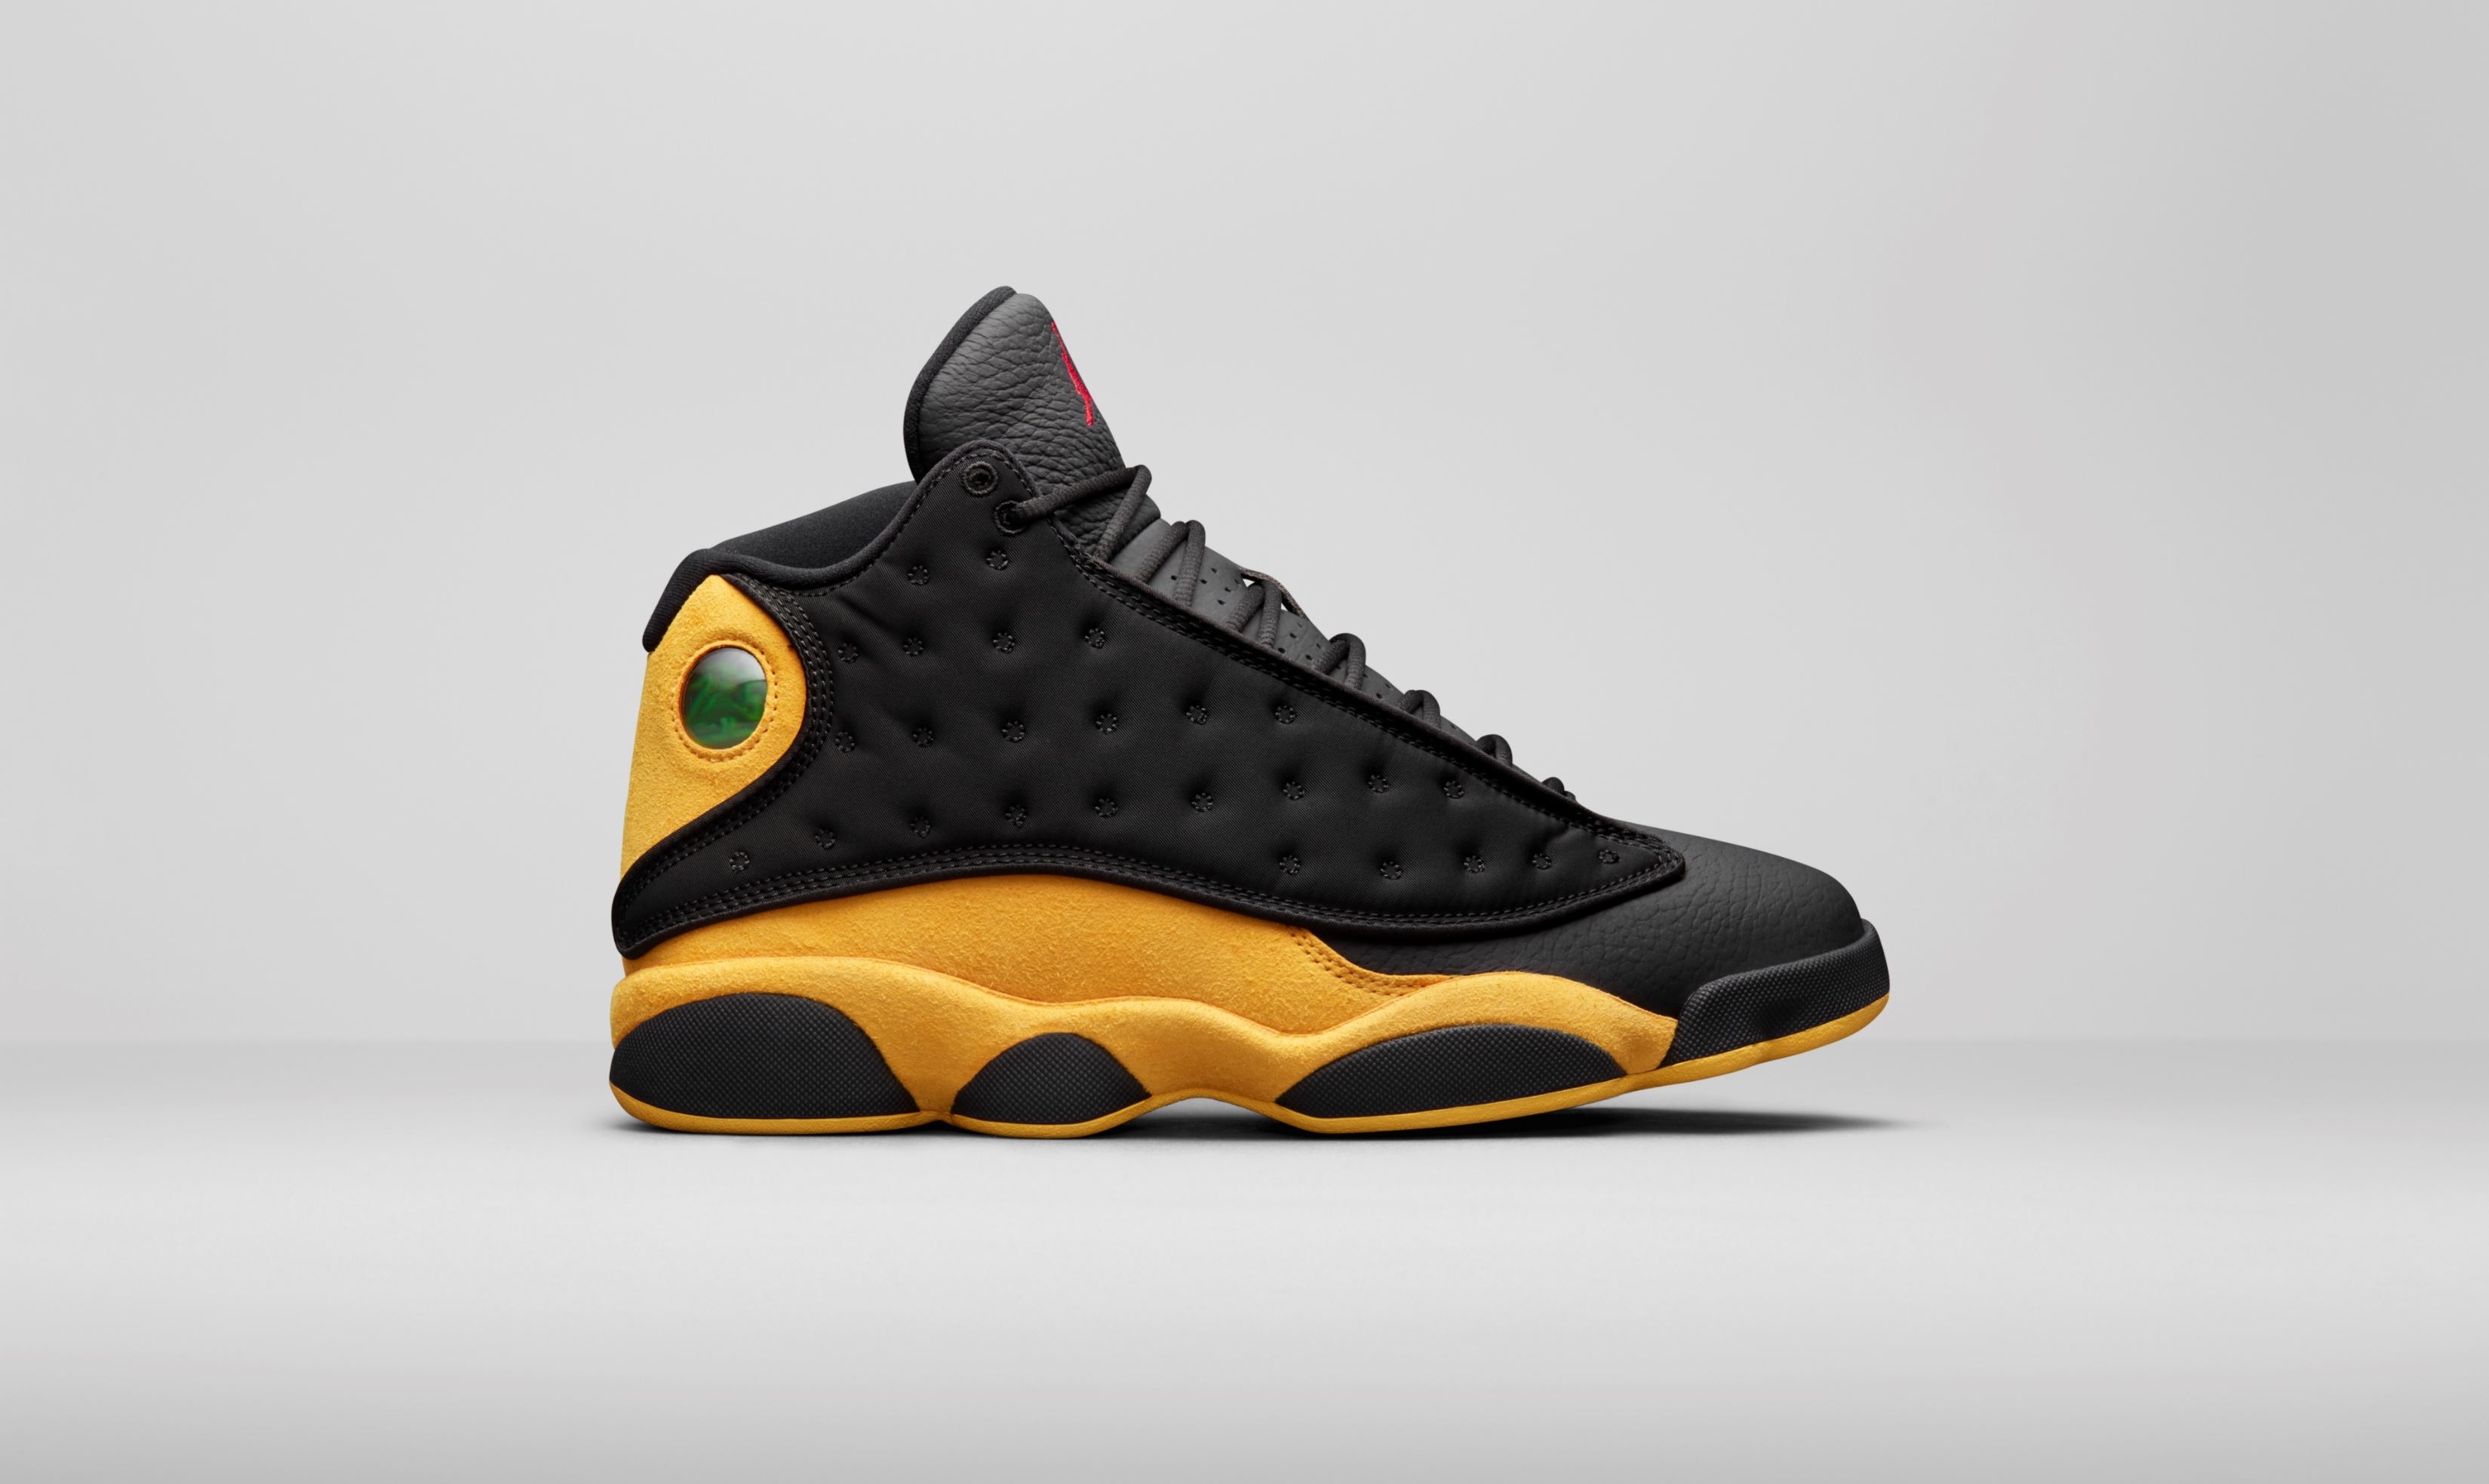 7ce45b1dd2a06b air jordan 13 carmelo anthony · Jordan Brand   Kicks On Court ...